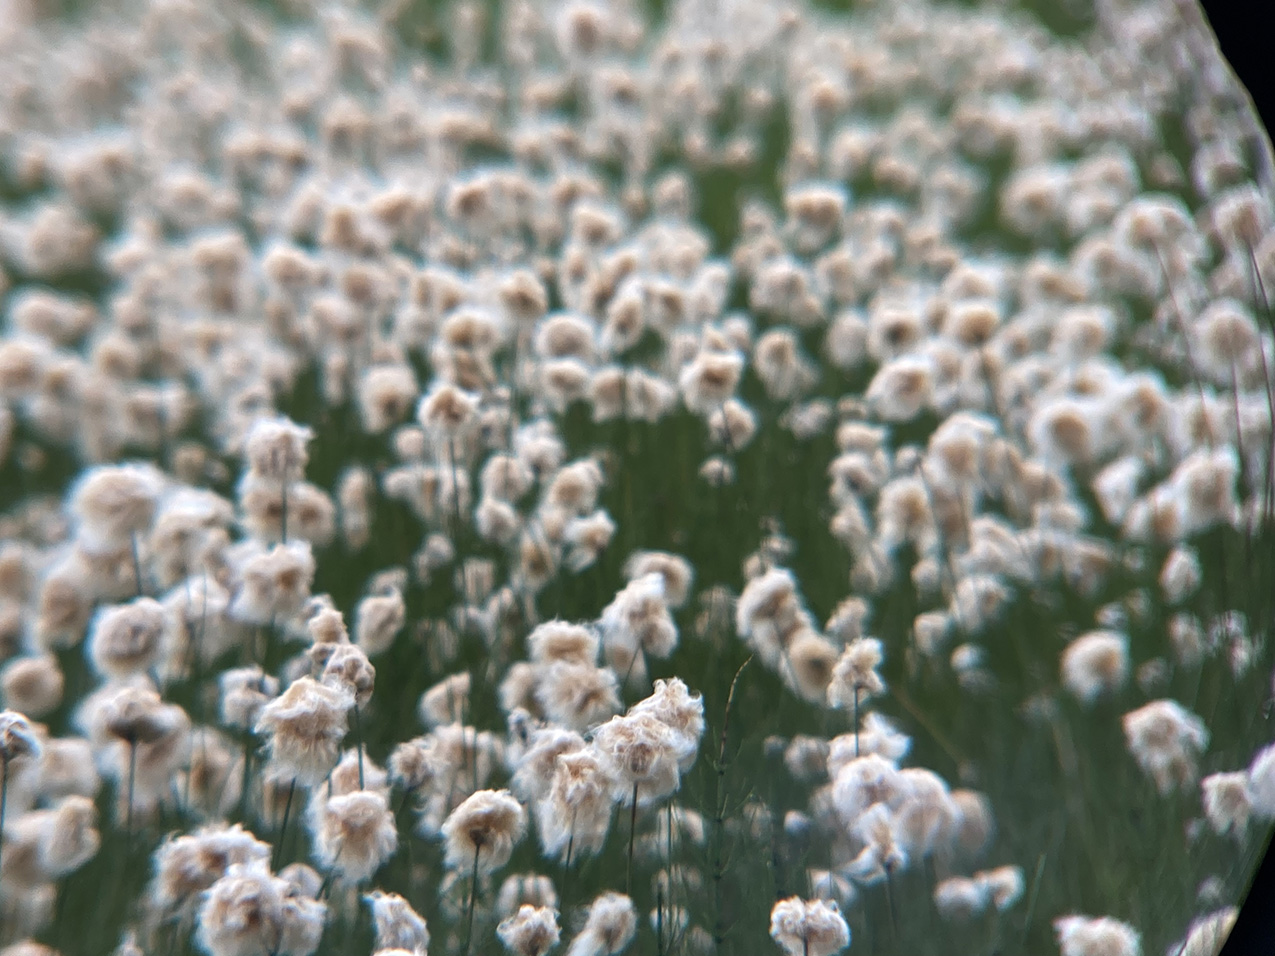 Photo filled with cottongrass blossoms, shallow depth of field